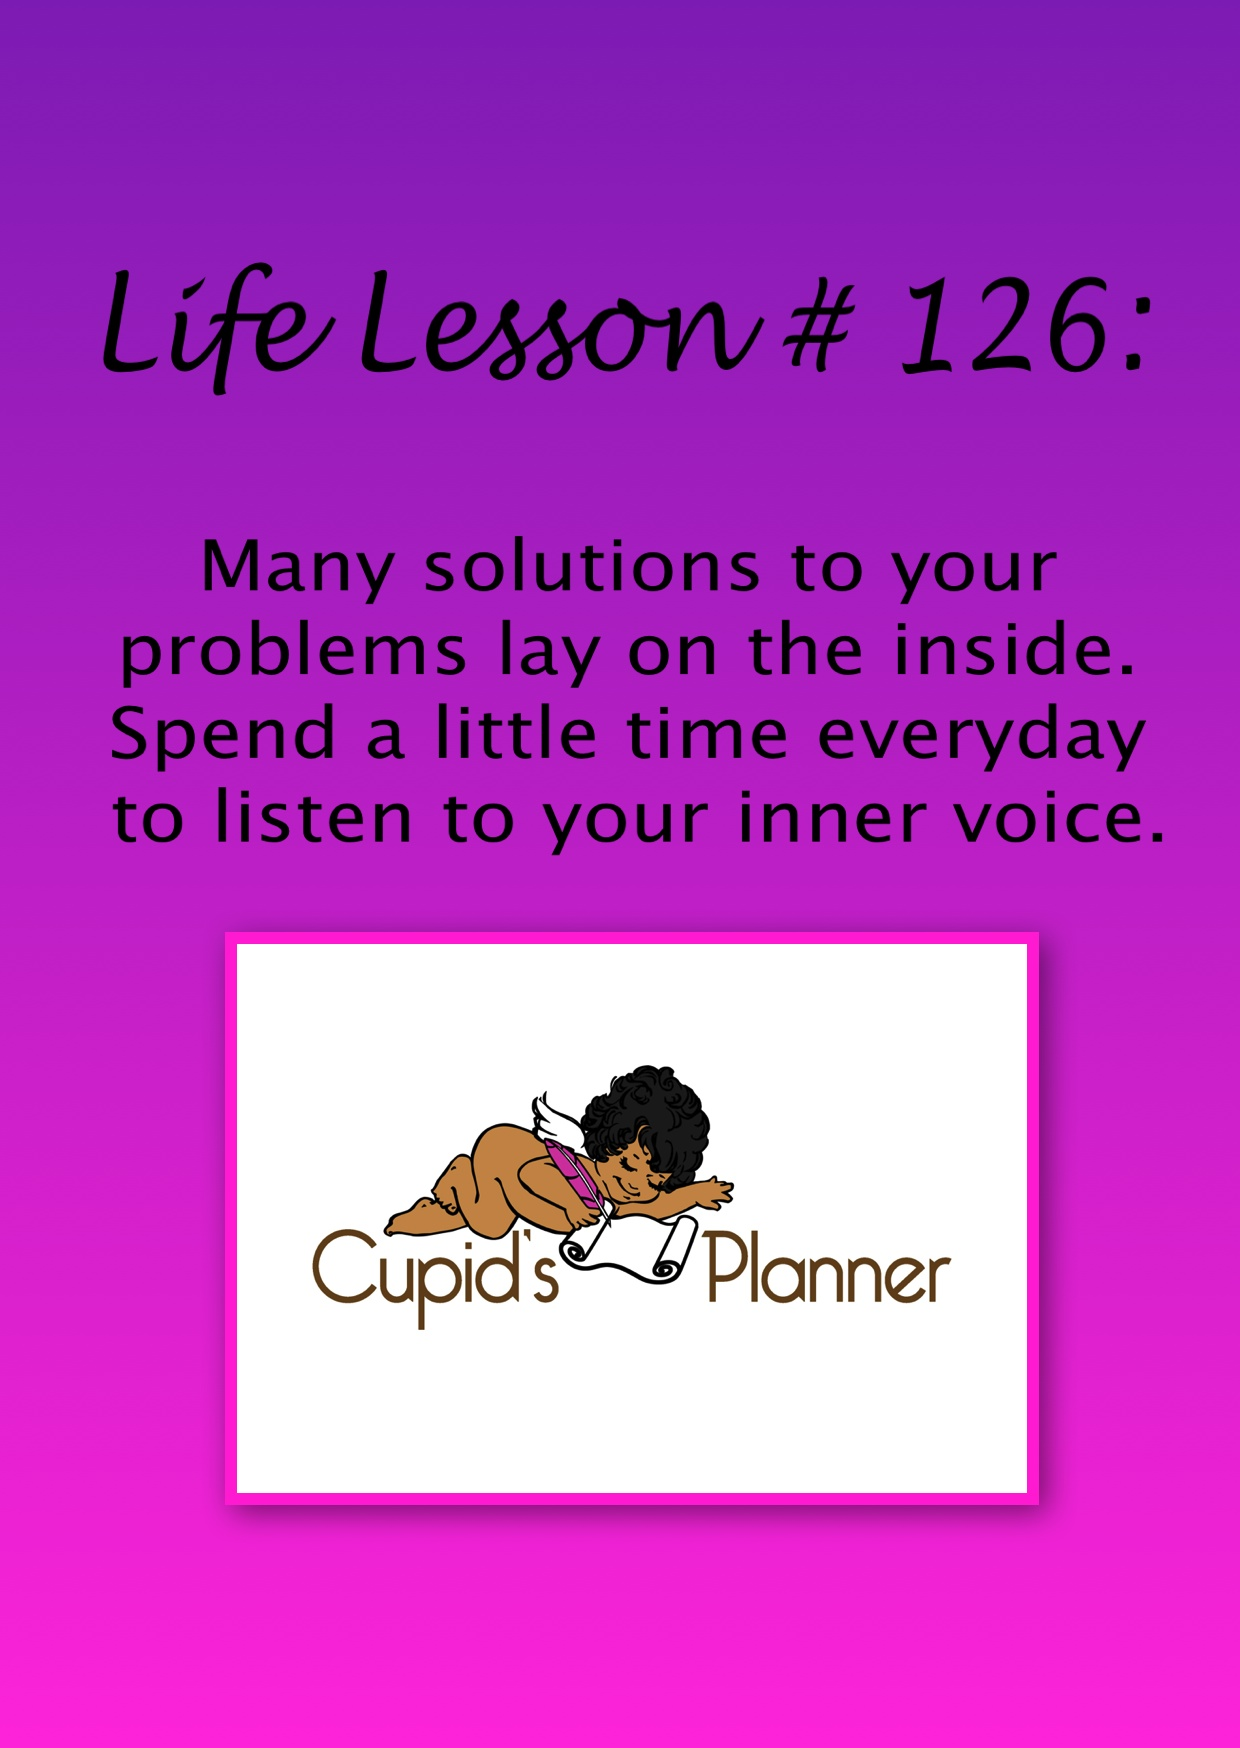 Life Lesson: Find the solution to problems from within